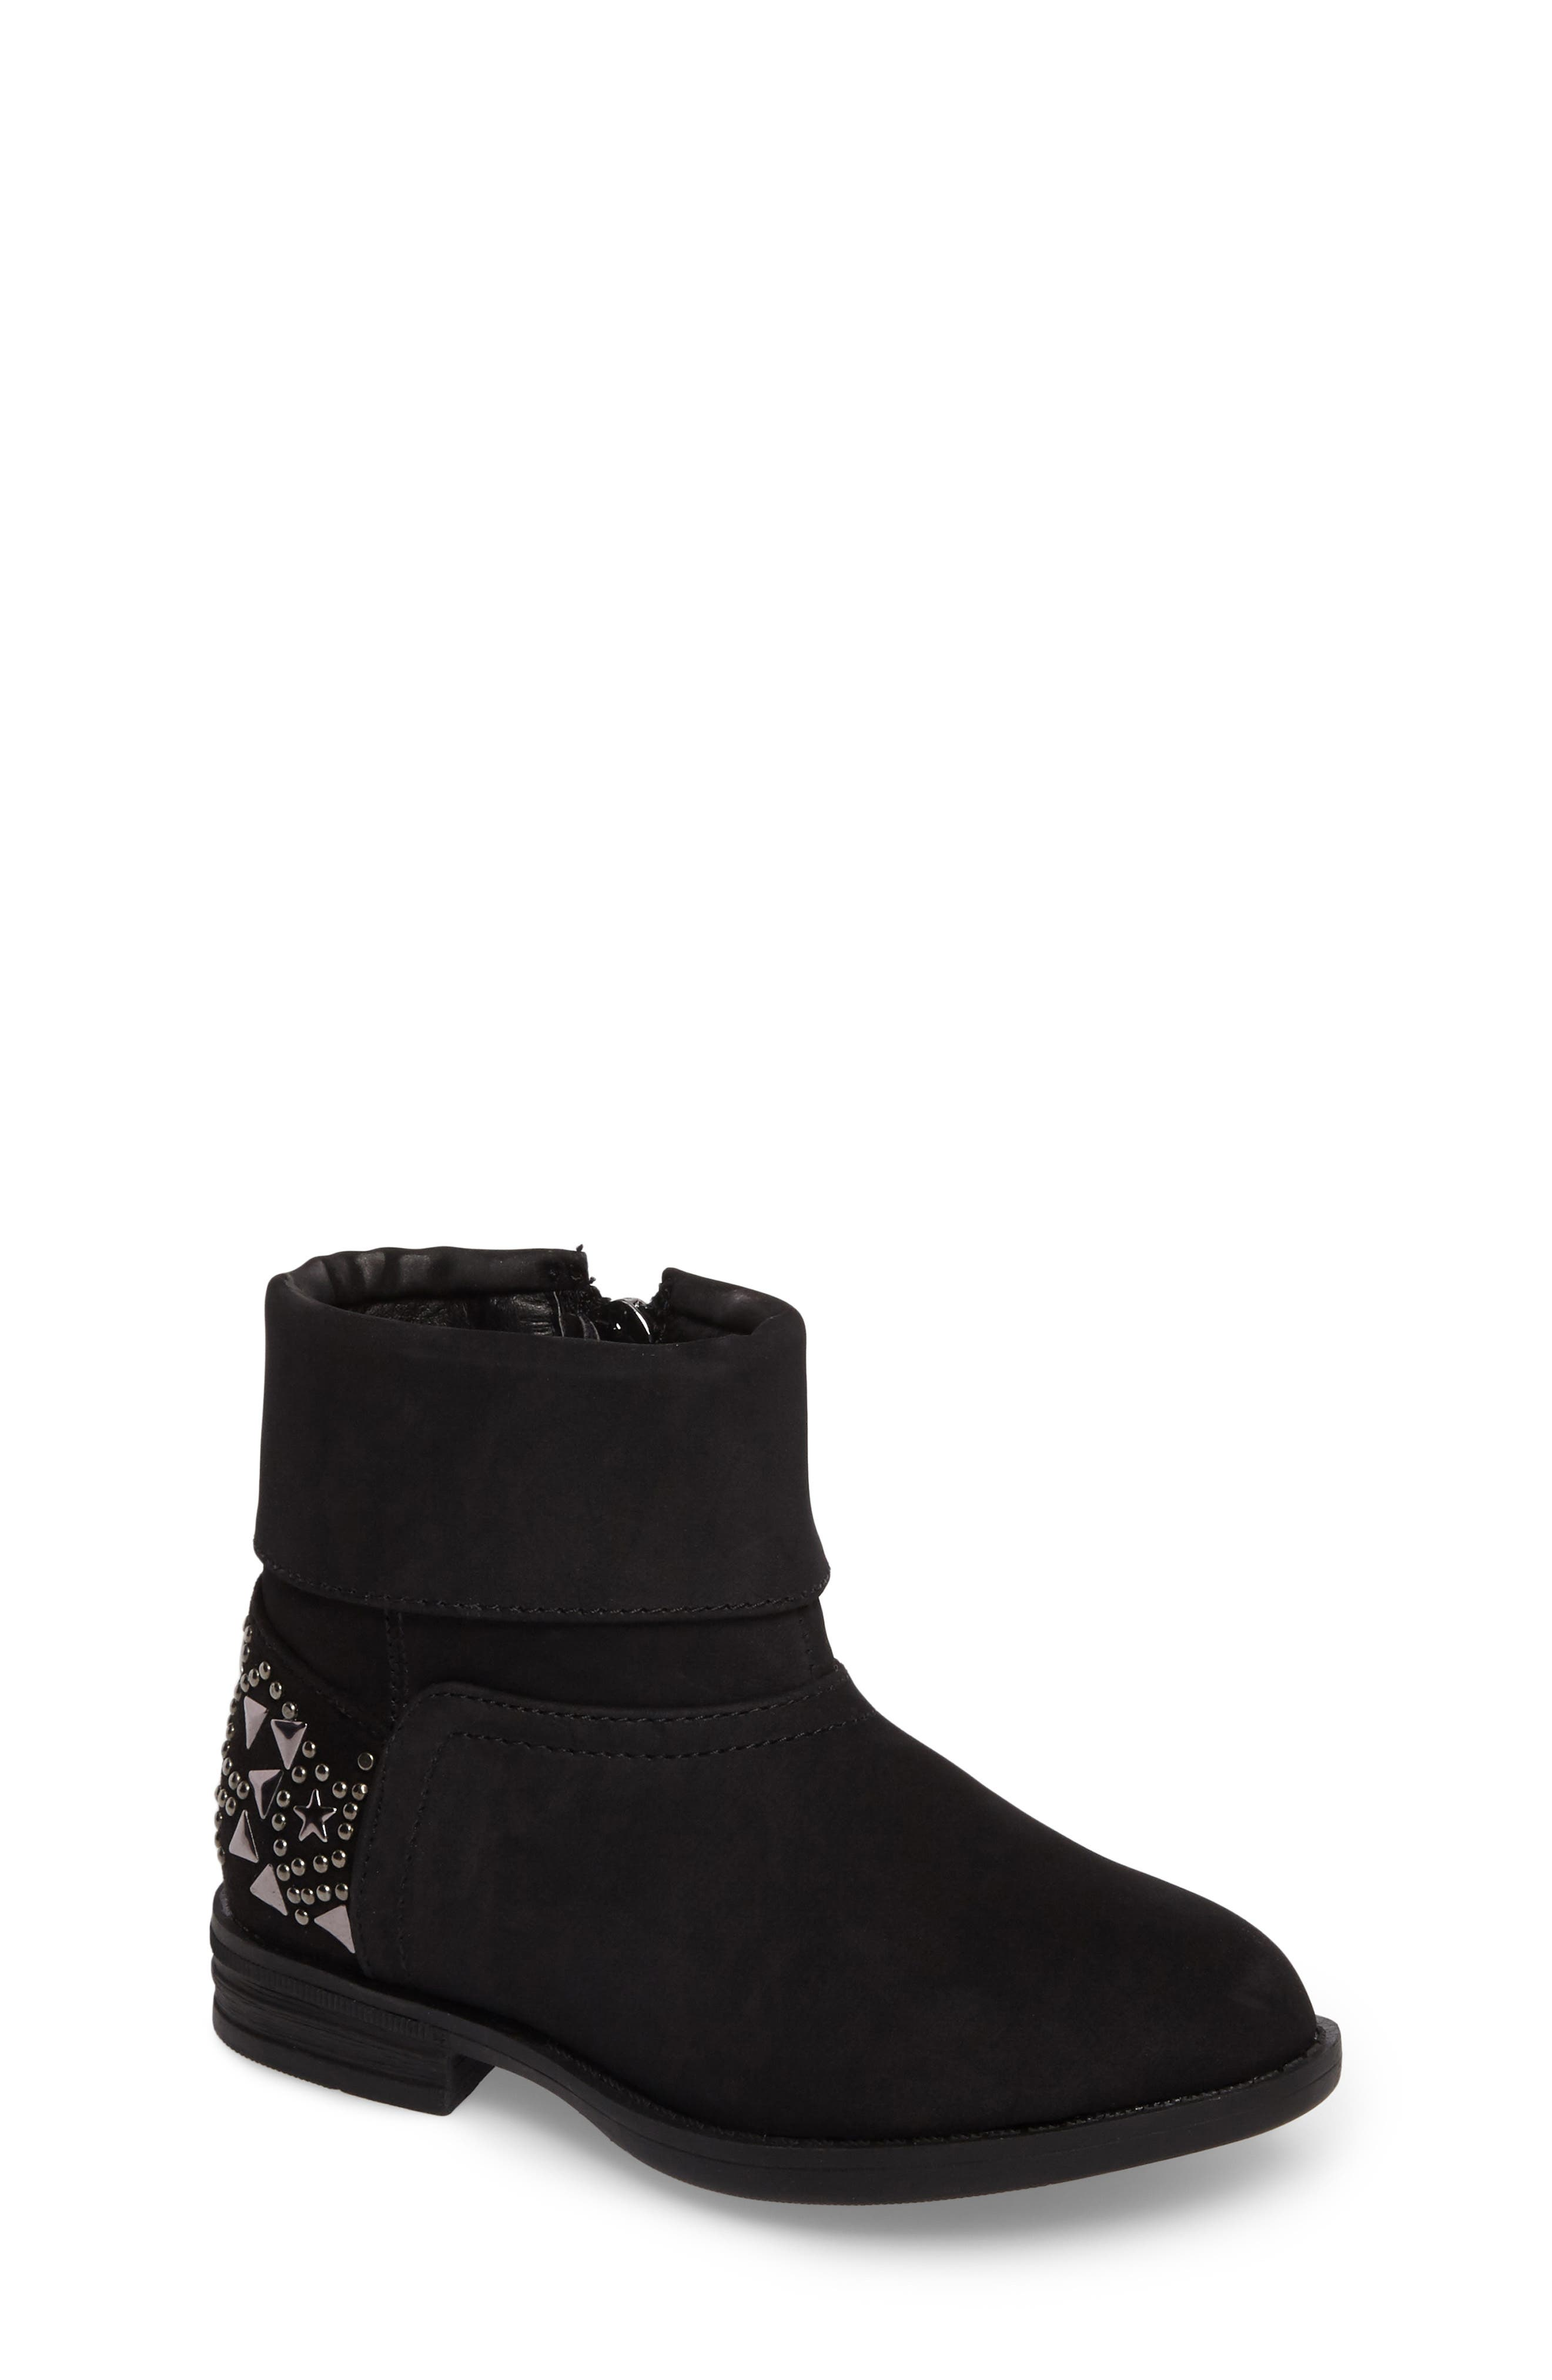 Wild Star Studded Bootie,                         Main,                         color, 001